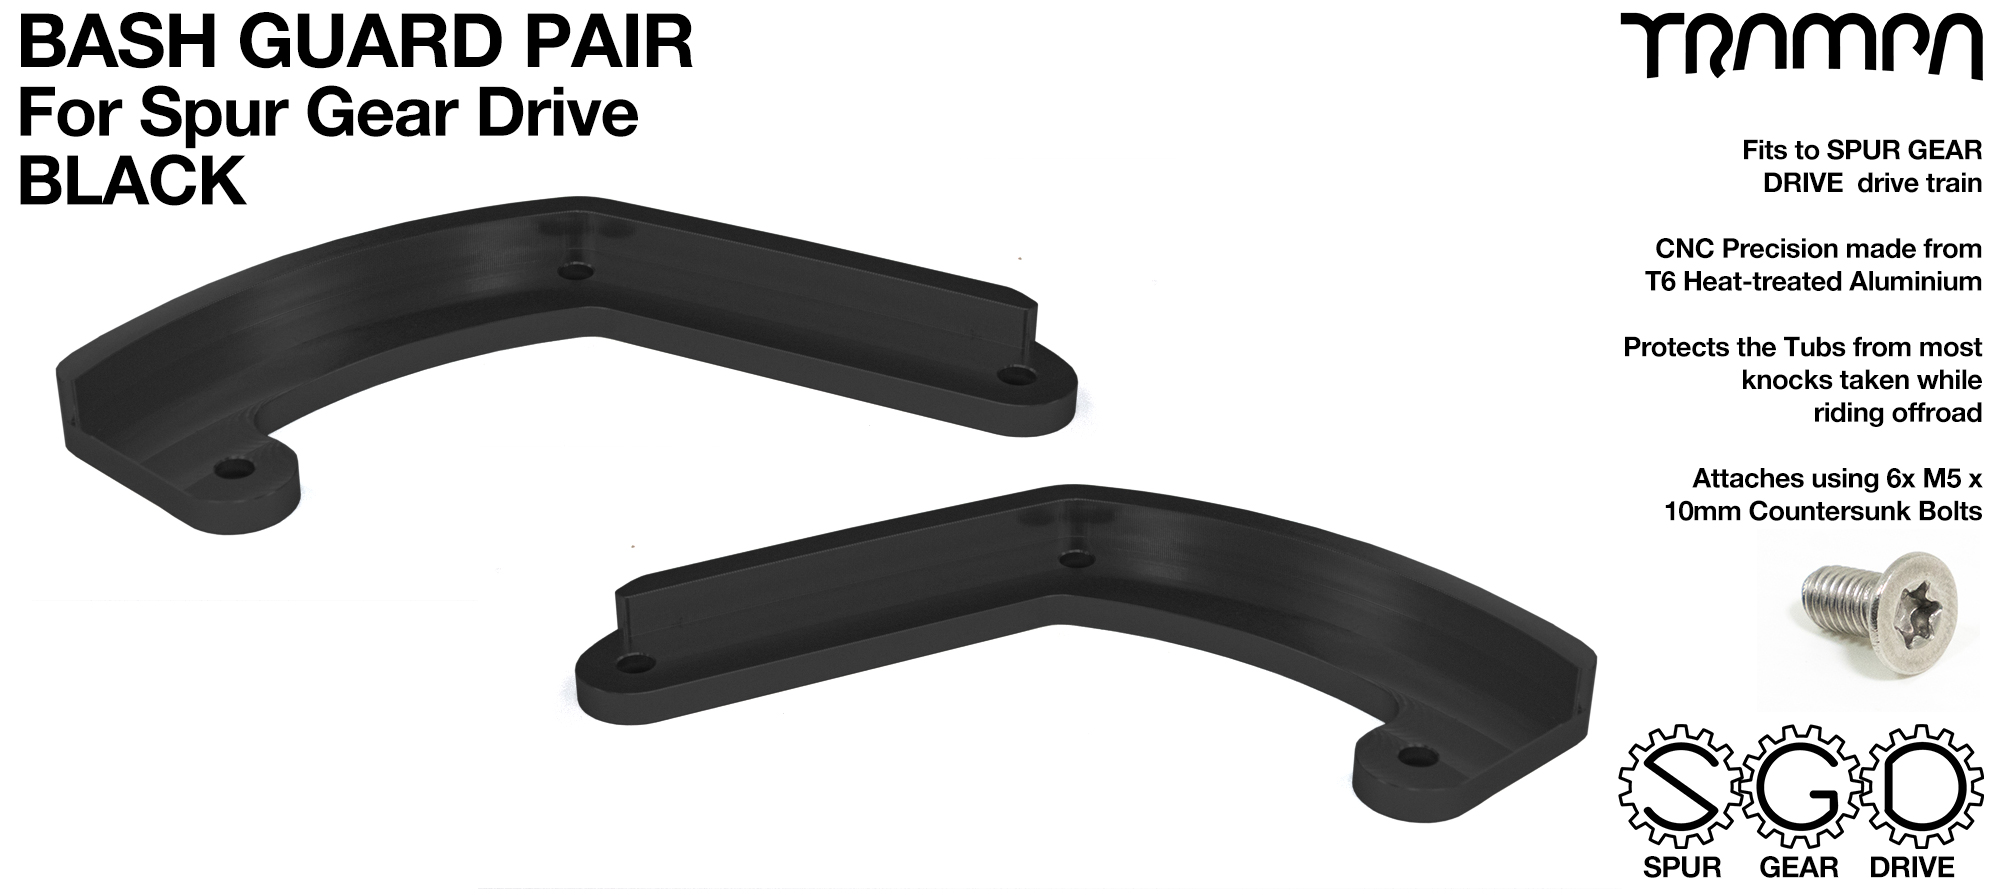 MkII Spur Gear Drive Bash Guards PAIR - BLACK